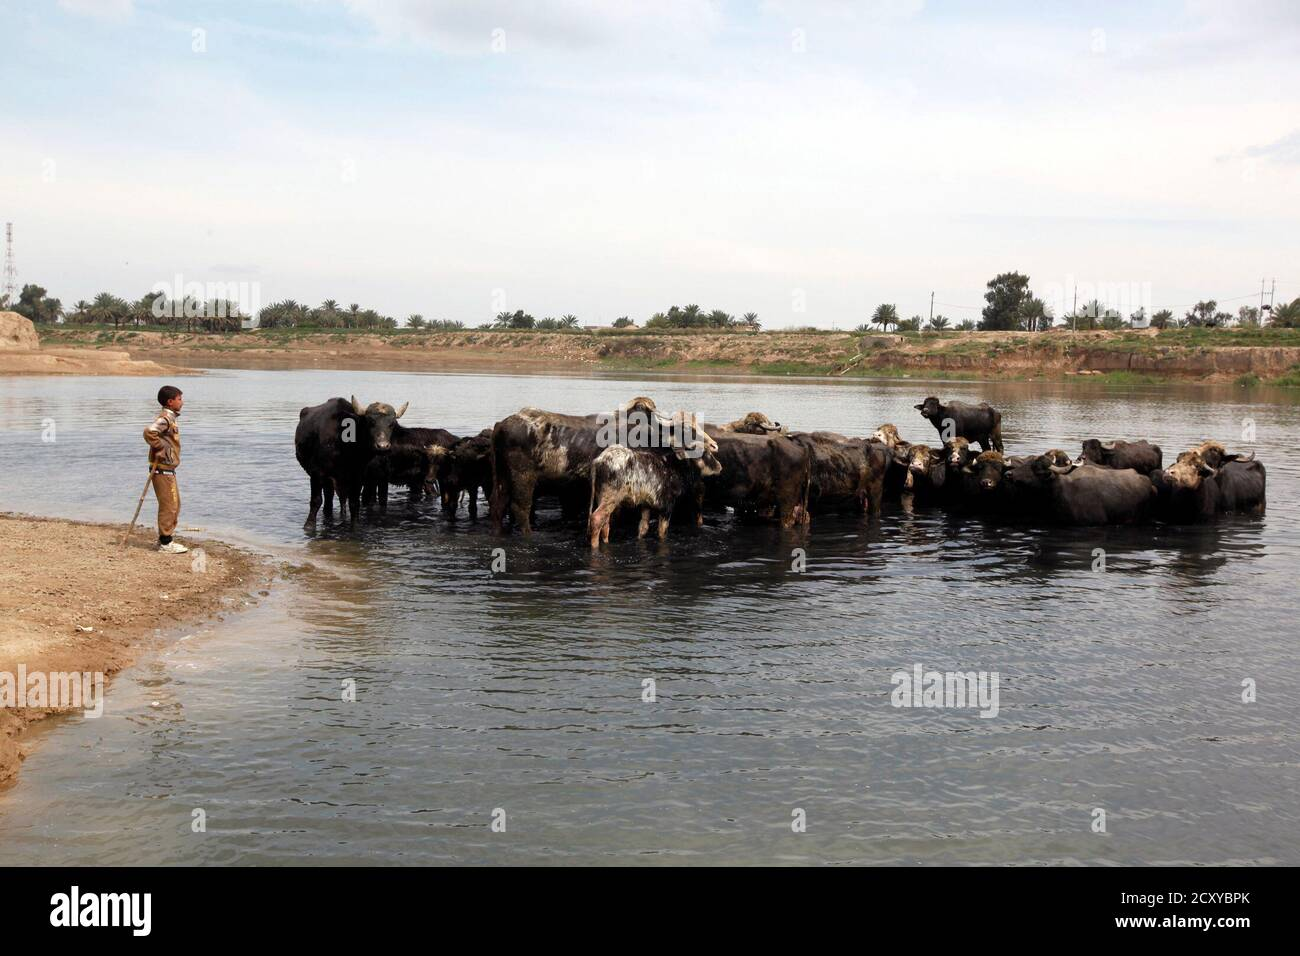 A boy stands near a herd of buffaloes by the Diyala river in eastern Baghdad's al-Futheliyah district, March 15, 2014. REUTERS/Ahmed Saad (IRAQ - Tags: SOCIETY ANIMALS) Stock Photo